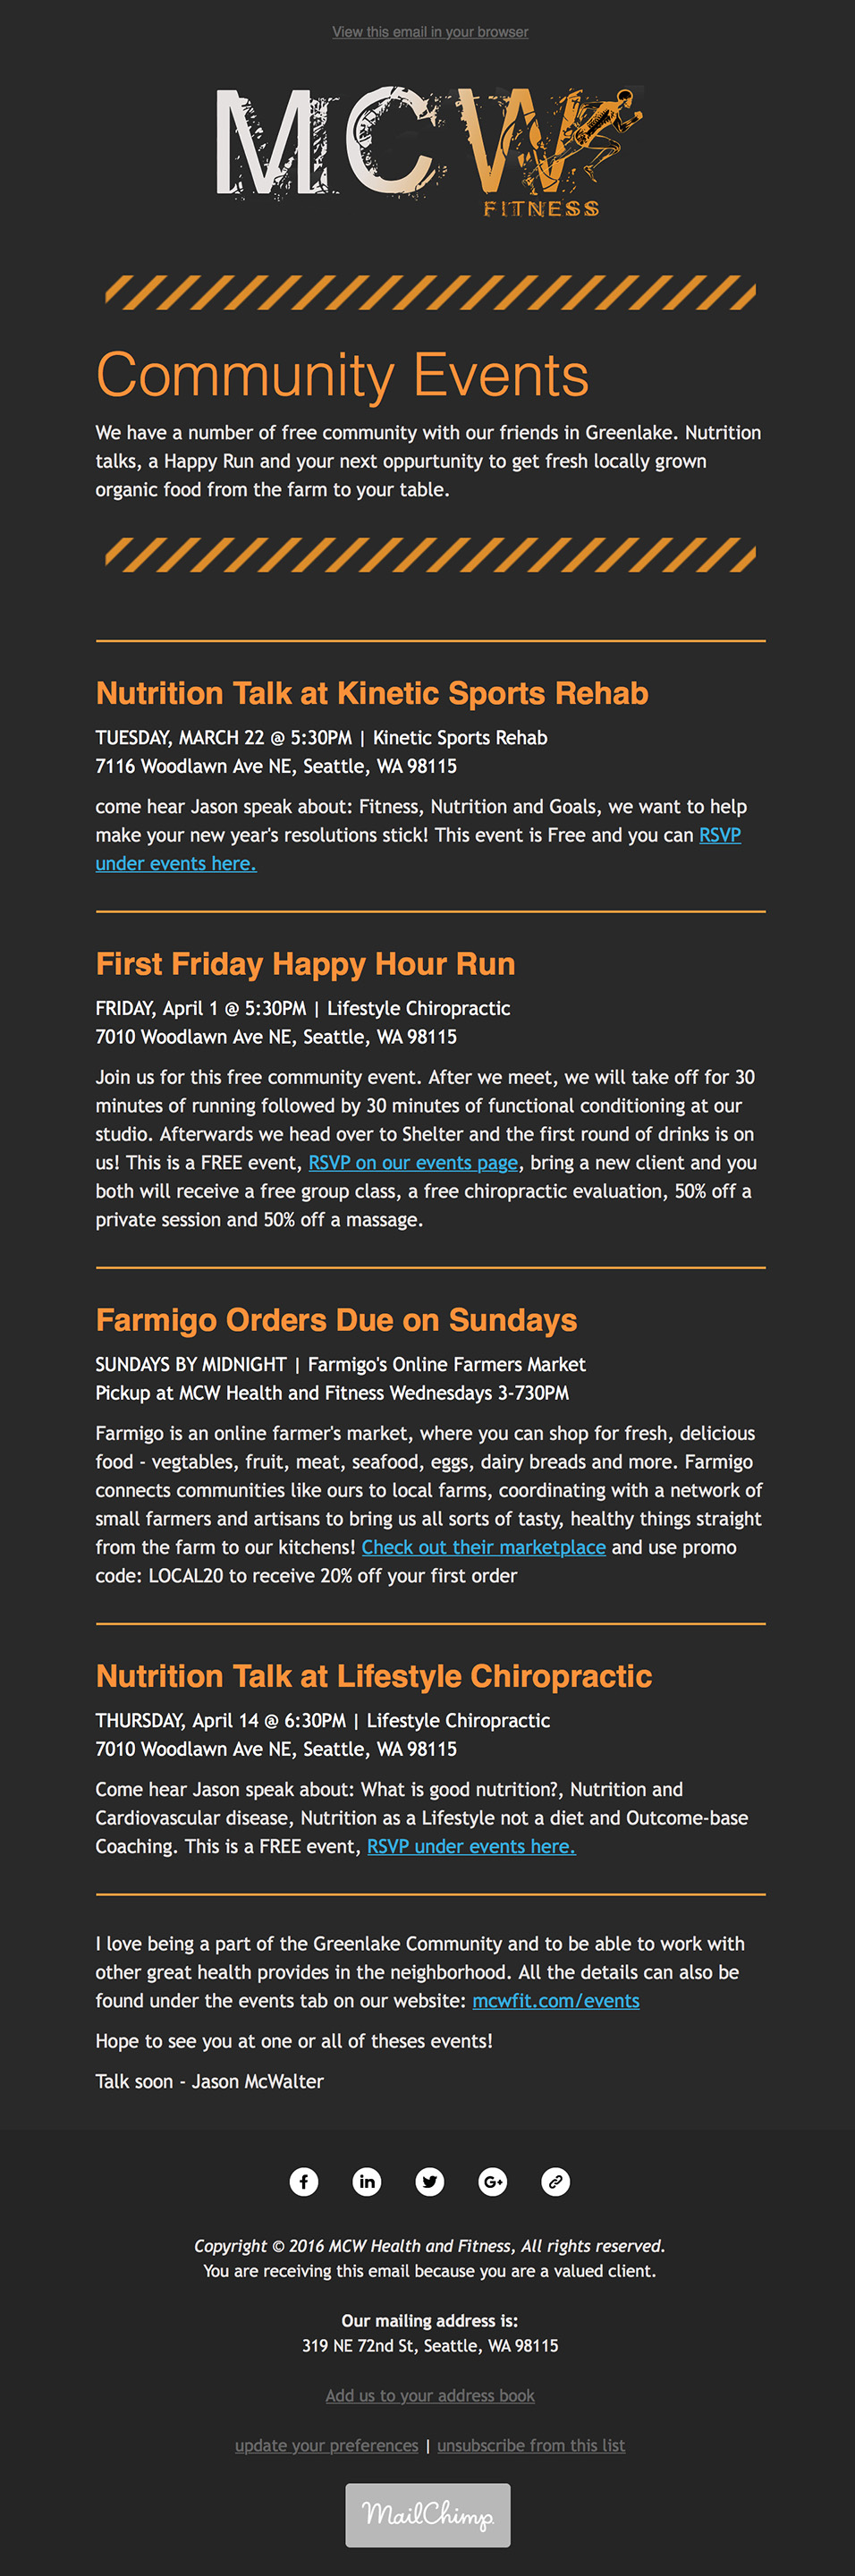 MCW Fitness eNewsletter